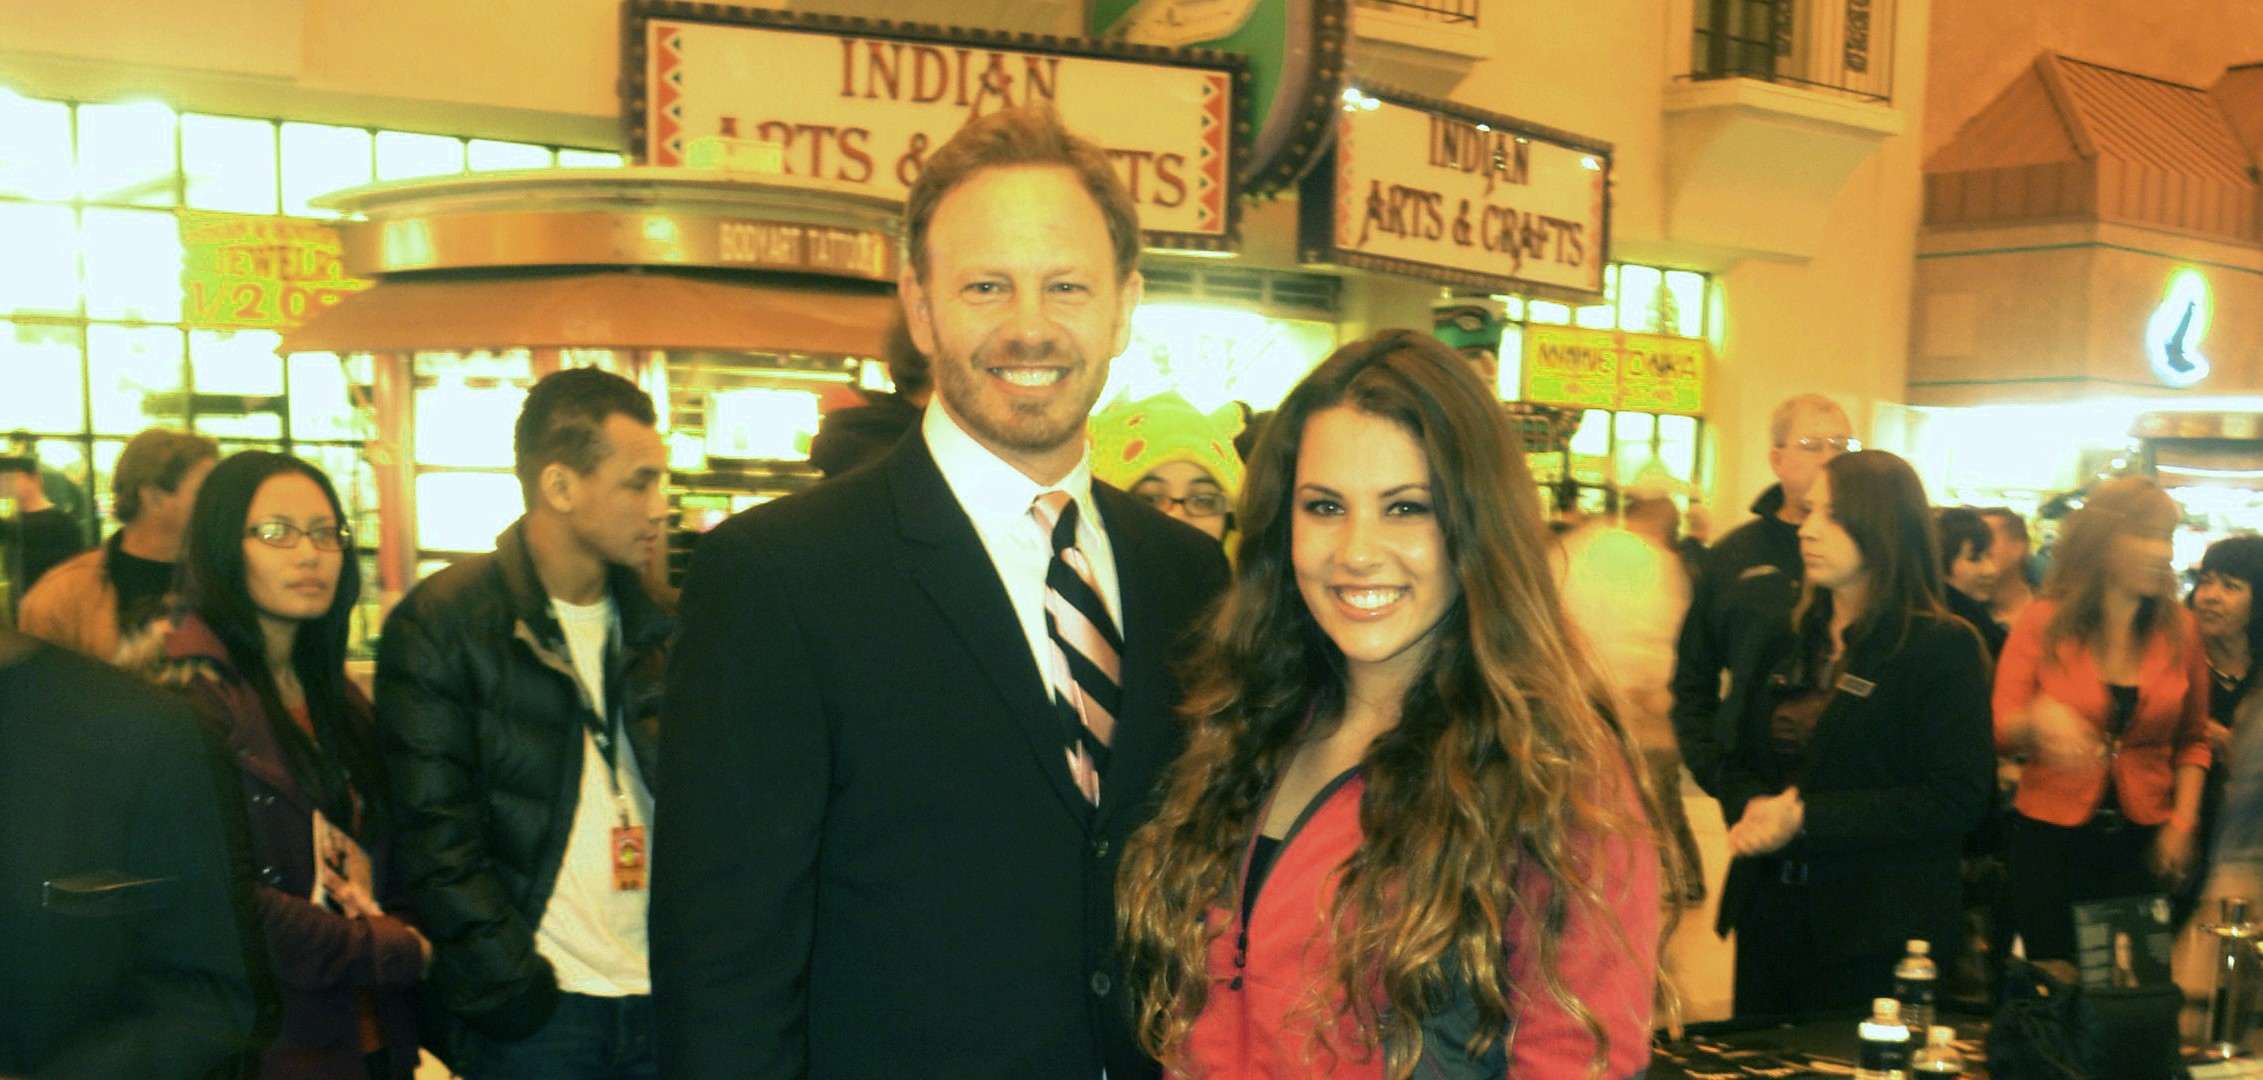 Actor Ian Ziering and drag racing beauty Ashley Sanford at the D Las Vegas on Fremont Street. (Tim Marshall)